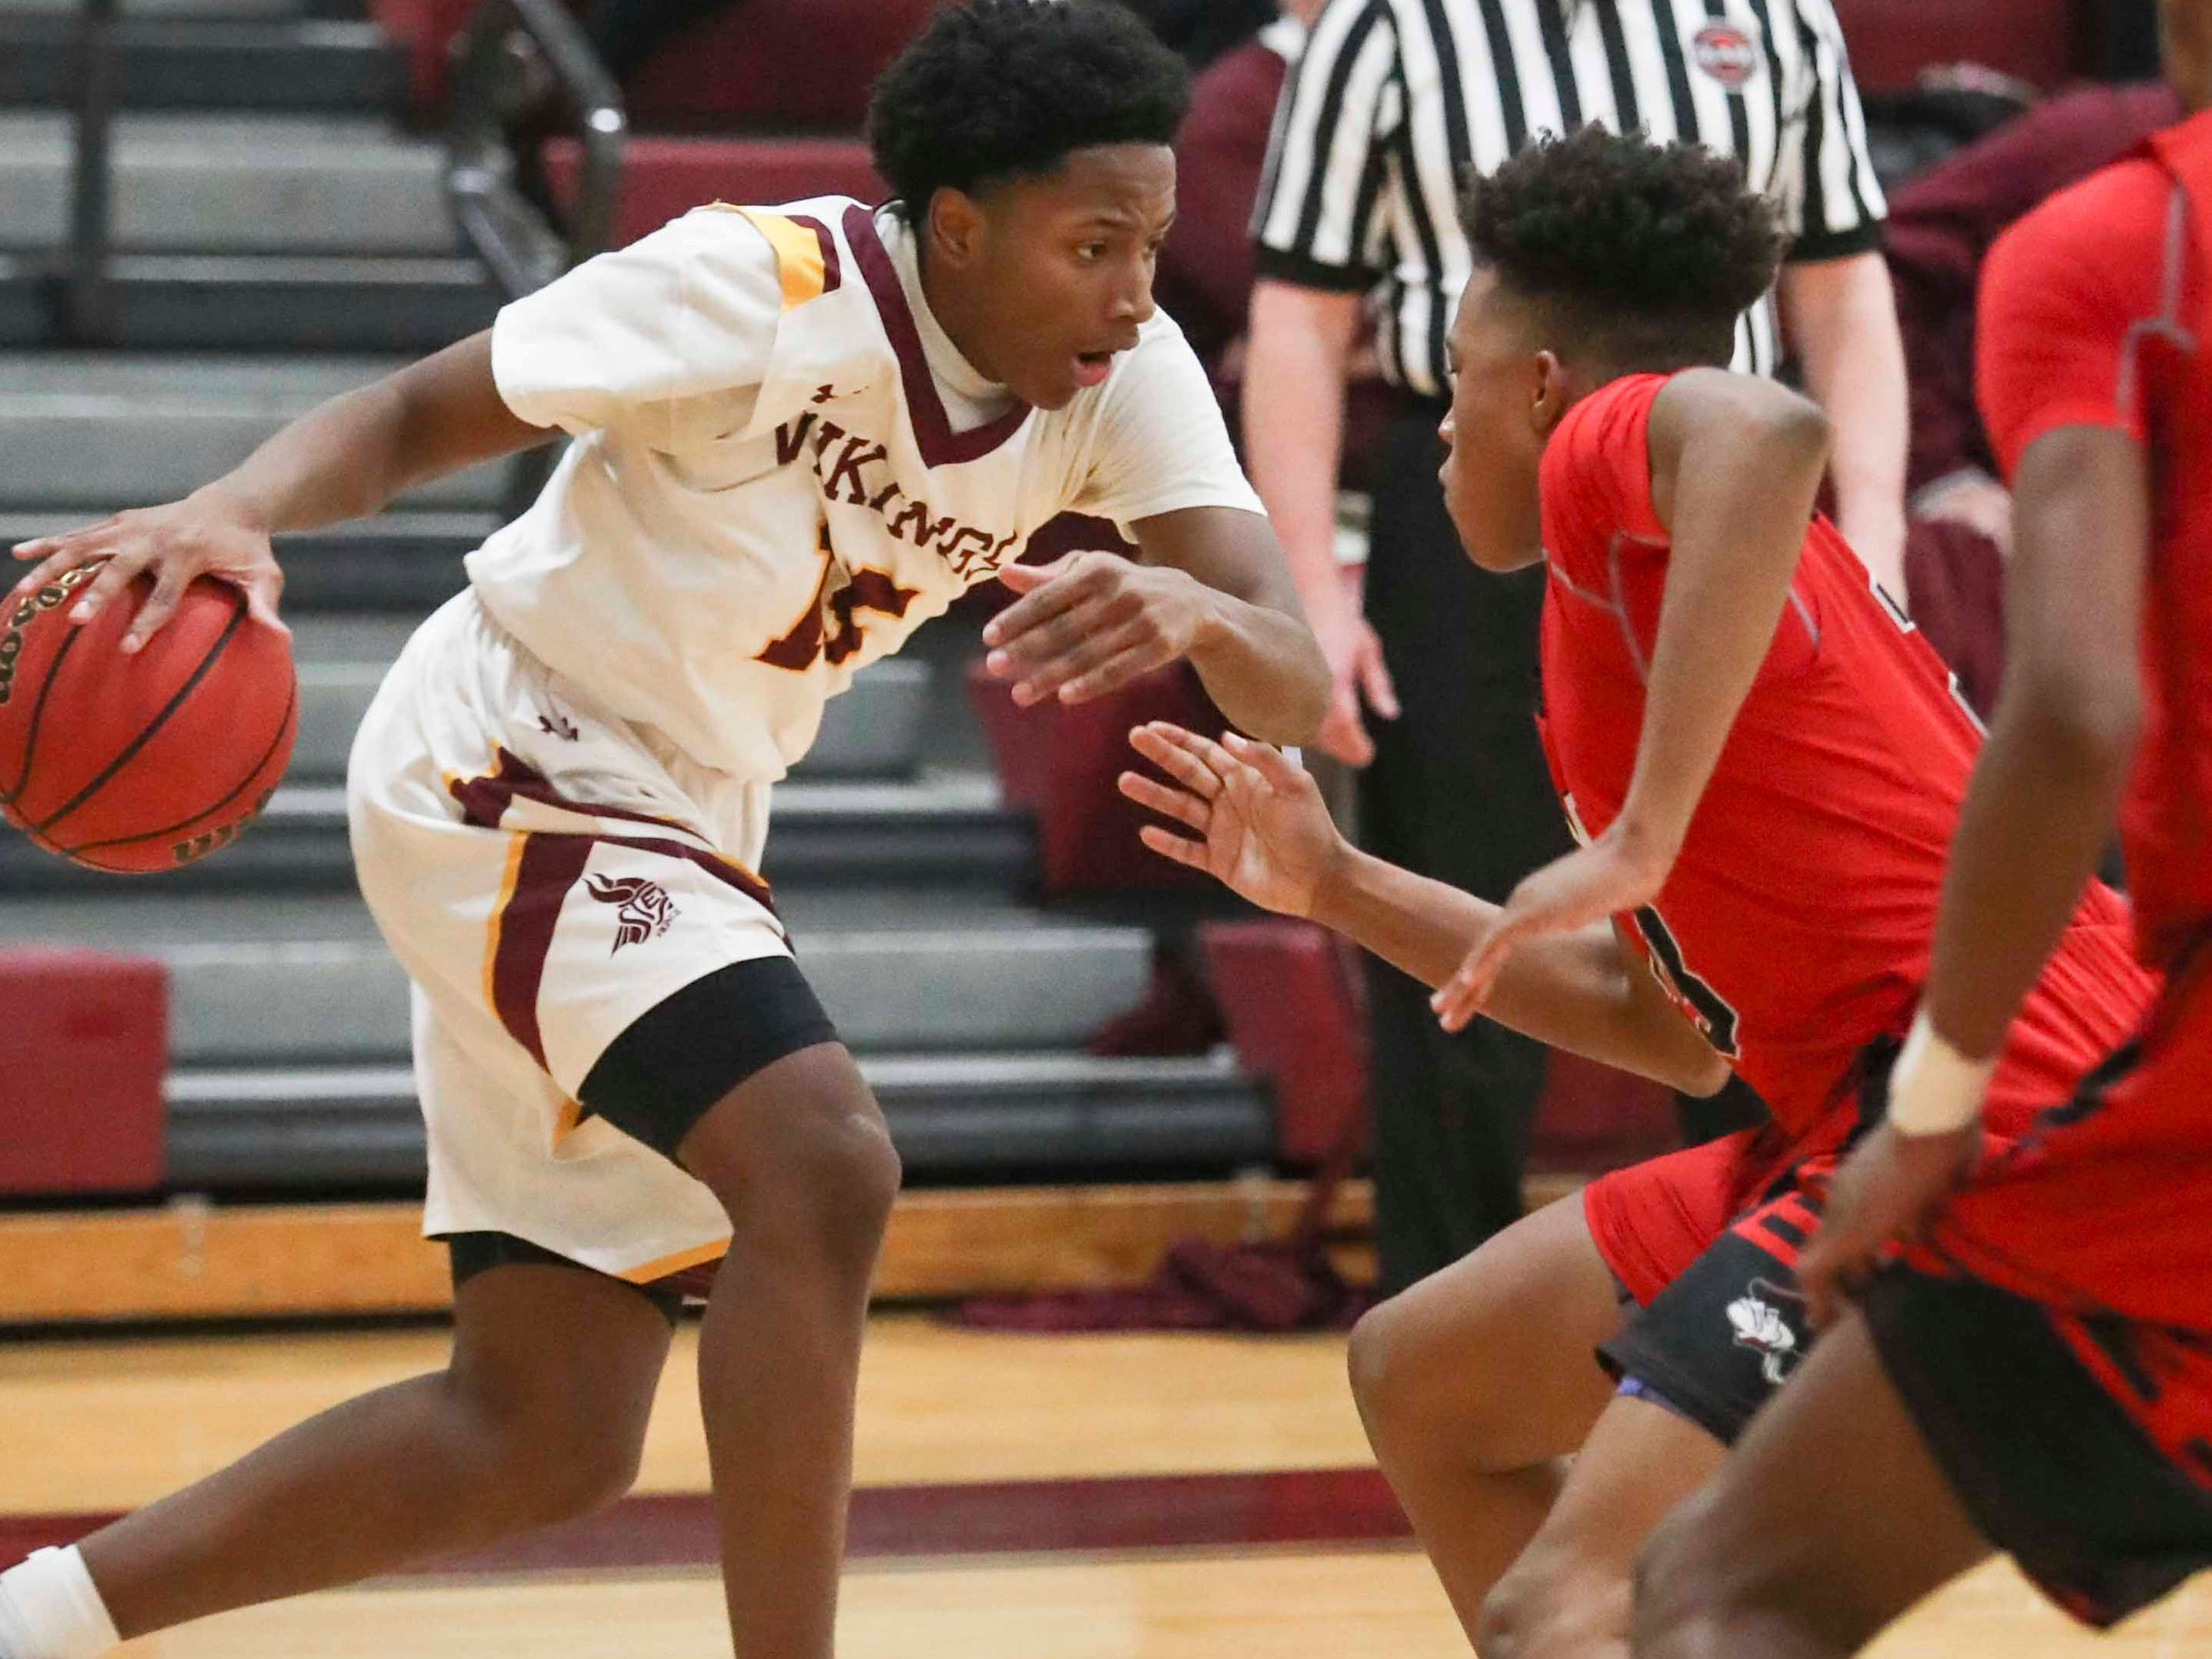 St. Elizabeth's Justin Money (left) drives as William Penn's Jaden Reed defends as the Colonials pull away in the second half to win 56-44 at the St. E Center Wednesday.